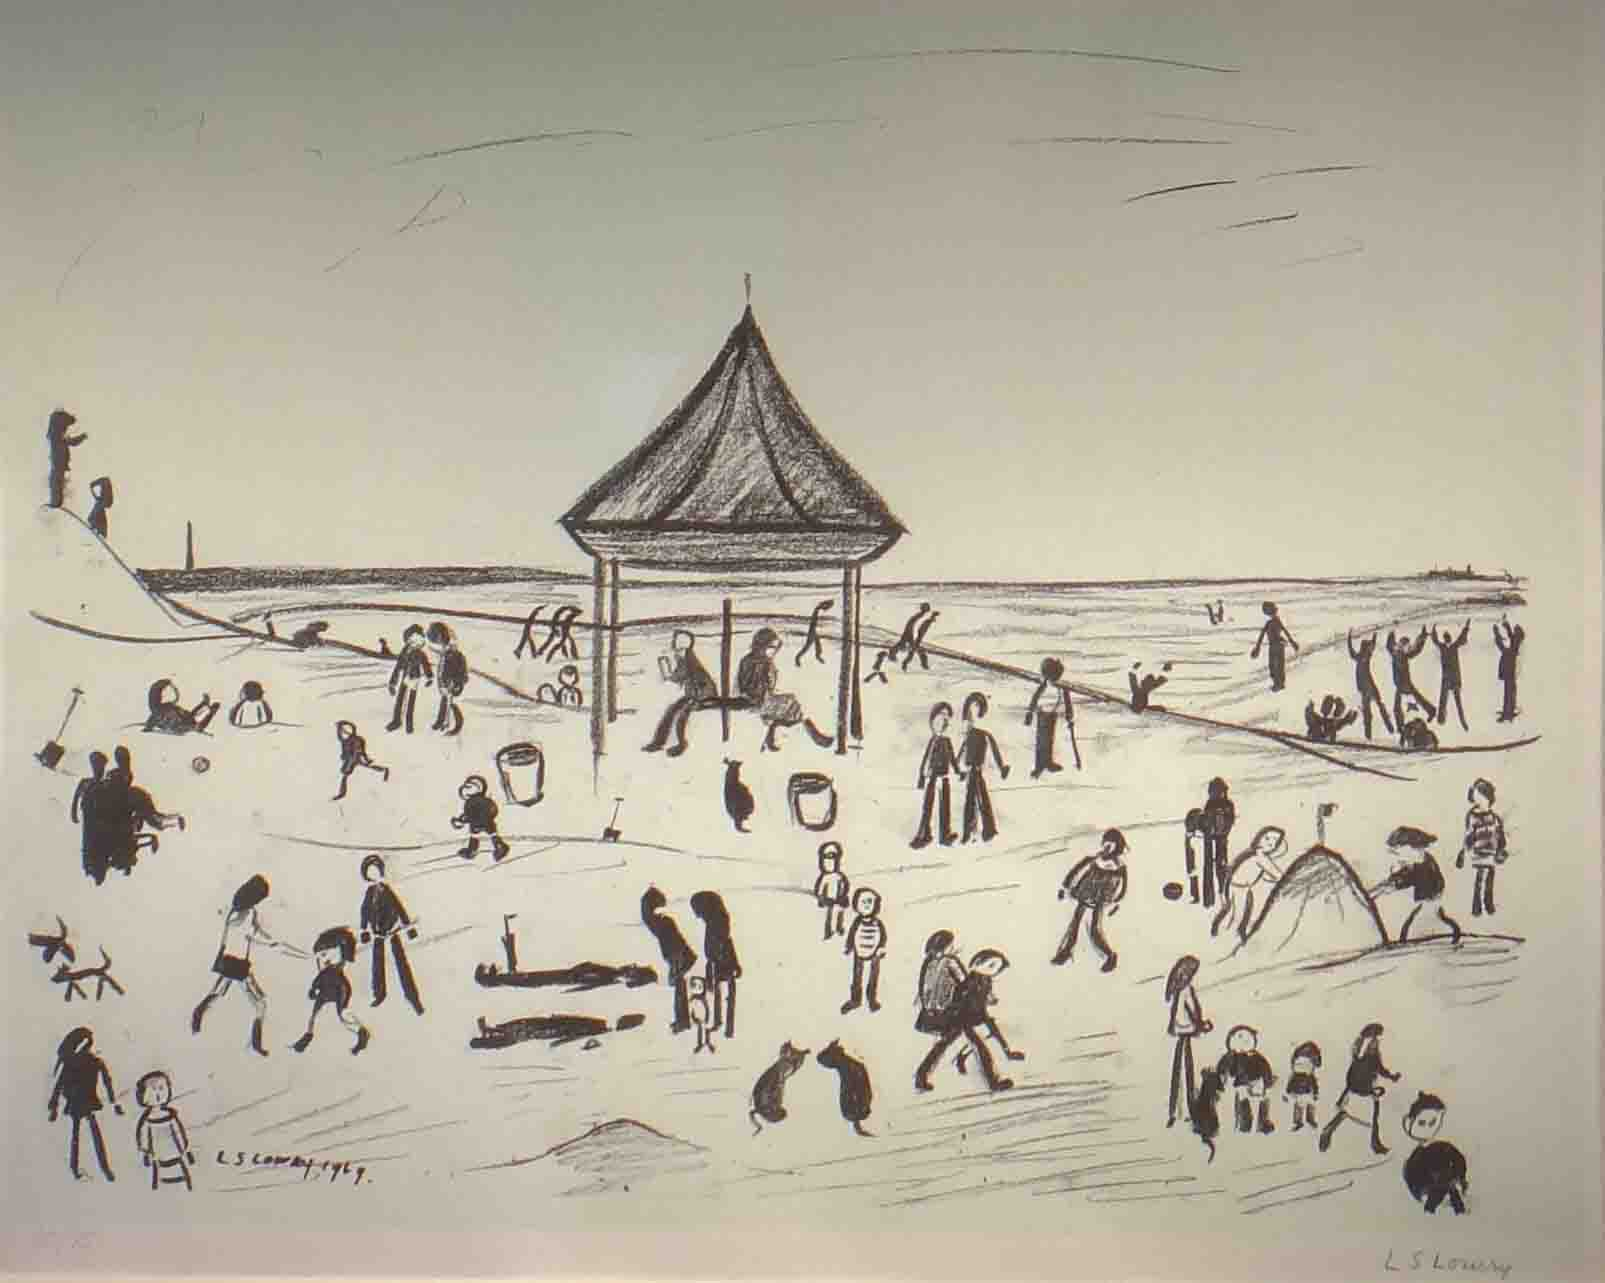 The Pavilion, Lowry original signed limited edition lithograph